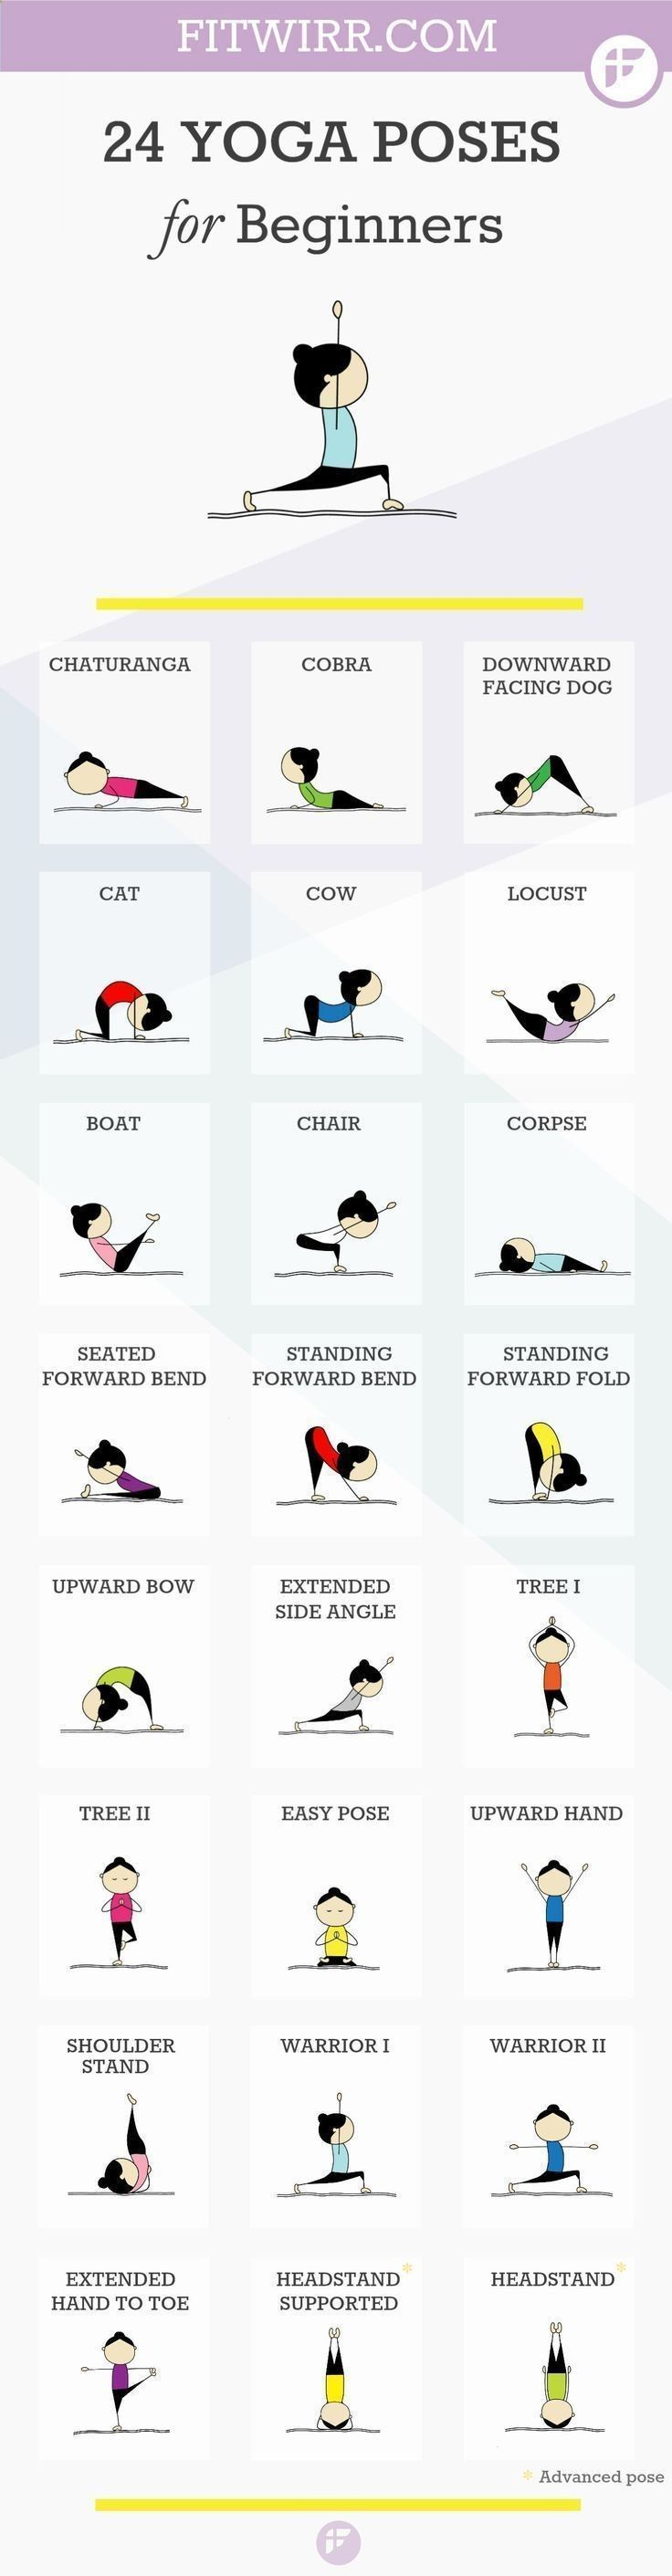 Easy Yoga Workout - 24 Yoga poses for beginners. Namaste :-). #yoga #meditation #health amzn.to/2stx5H7 Get your sexiest body ever without,crunches,cardio,or ever setting foot in a gym #yogameditation